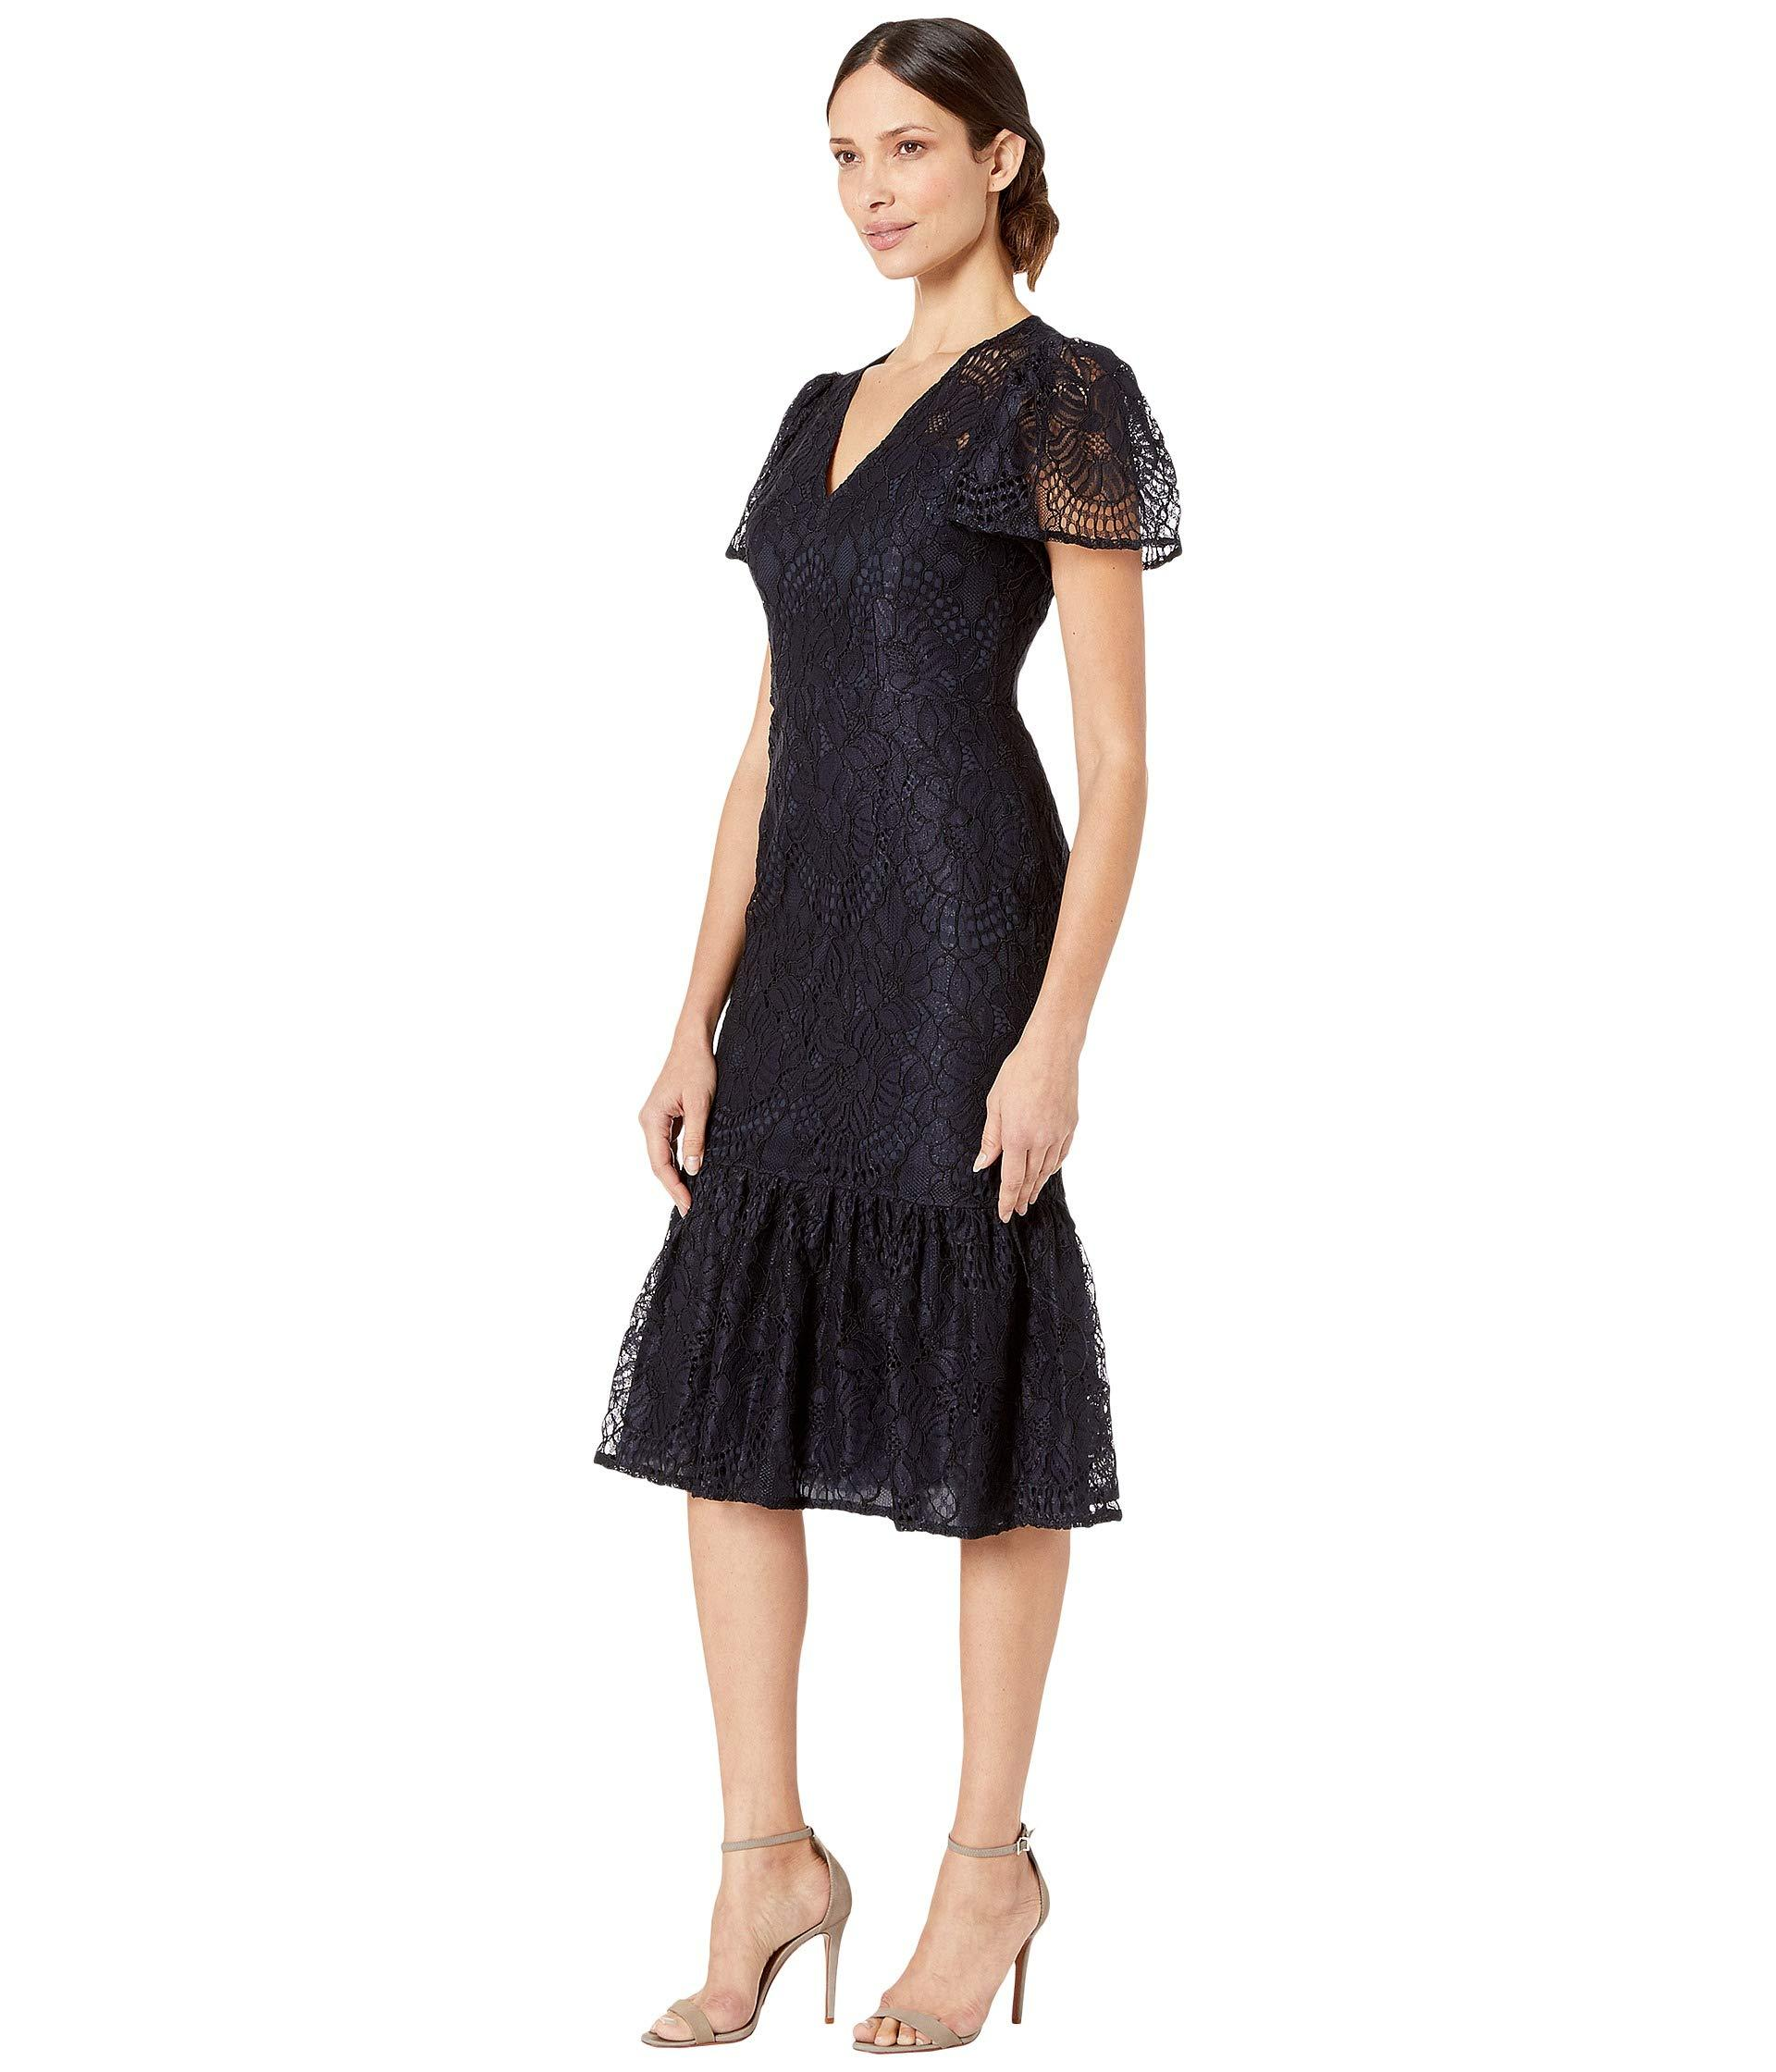 d8846576b95 Navy Lace Cocktail Dress With Sleeves - Gomes Weine AG